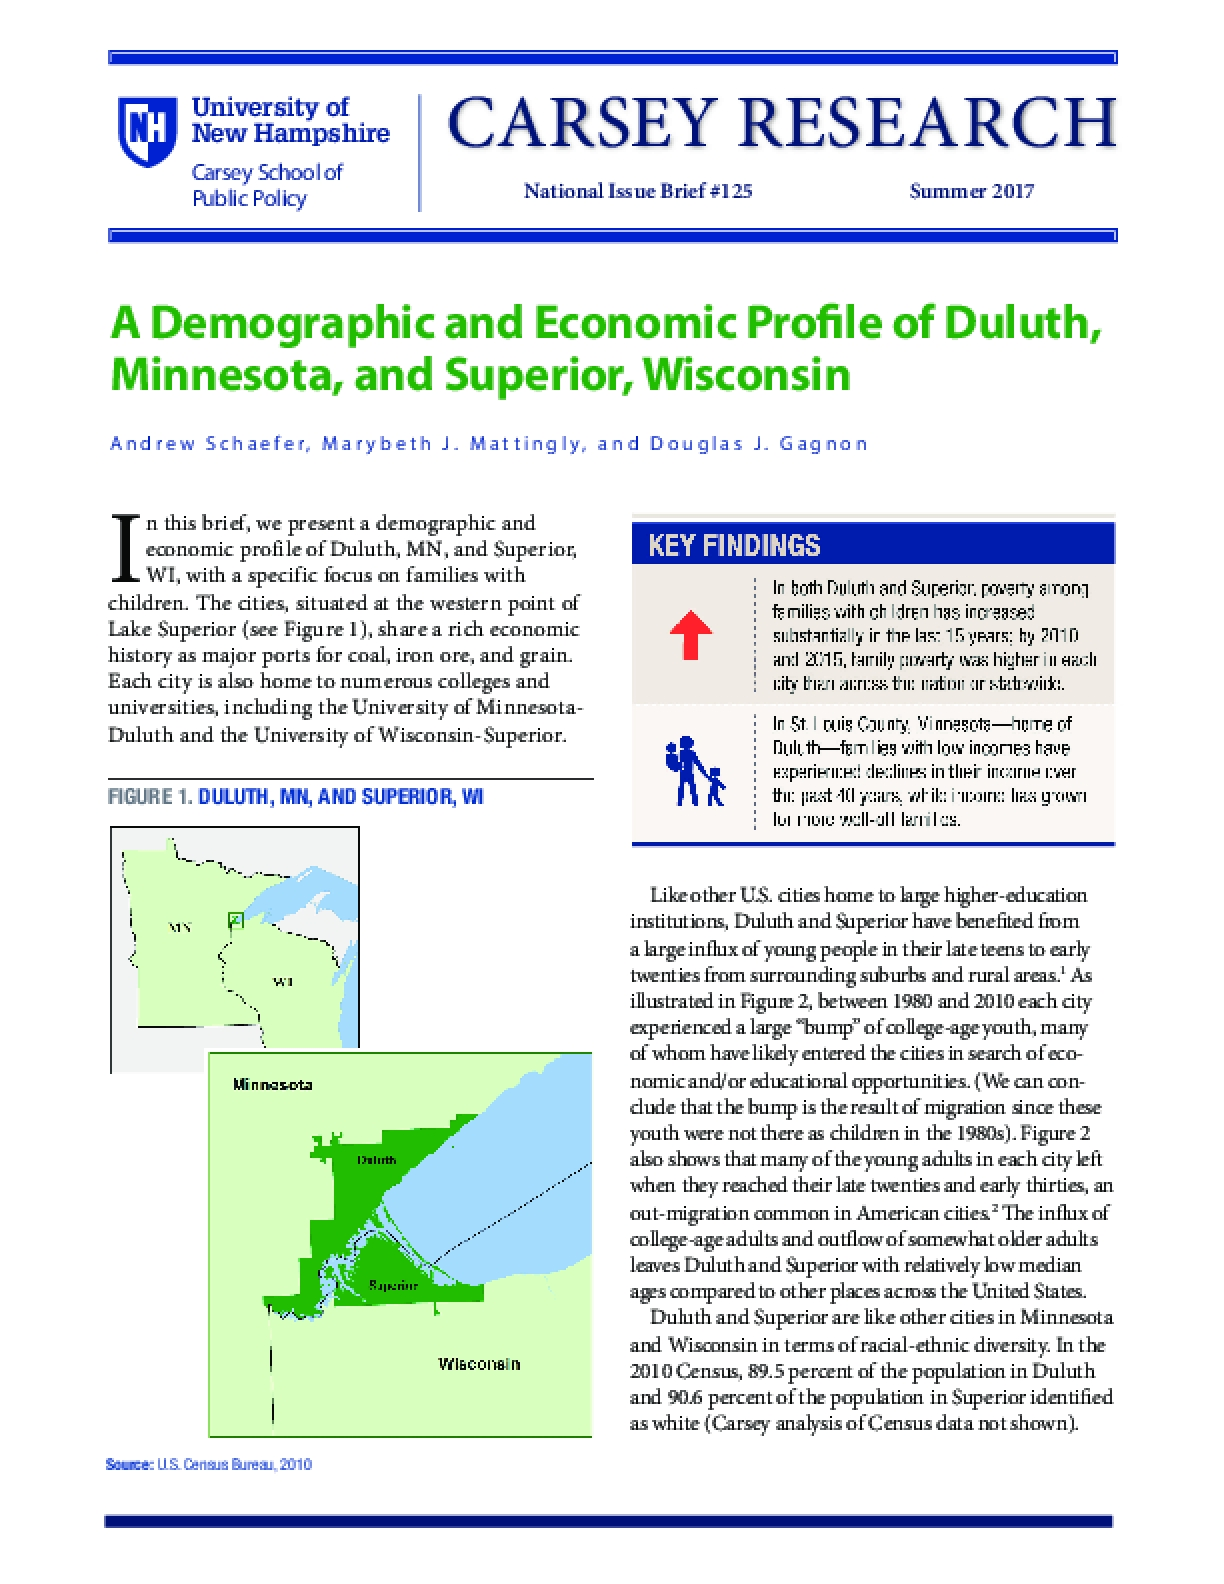 A Demographic and Economic Profile of Duluth, Minnesota, and Superior, Wisconsin